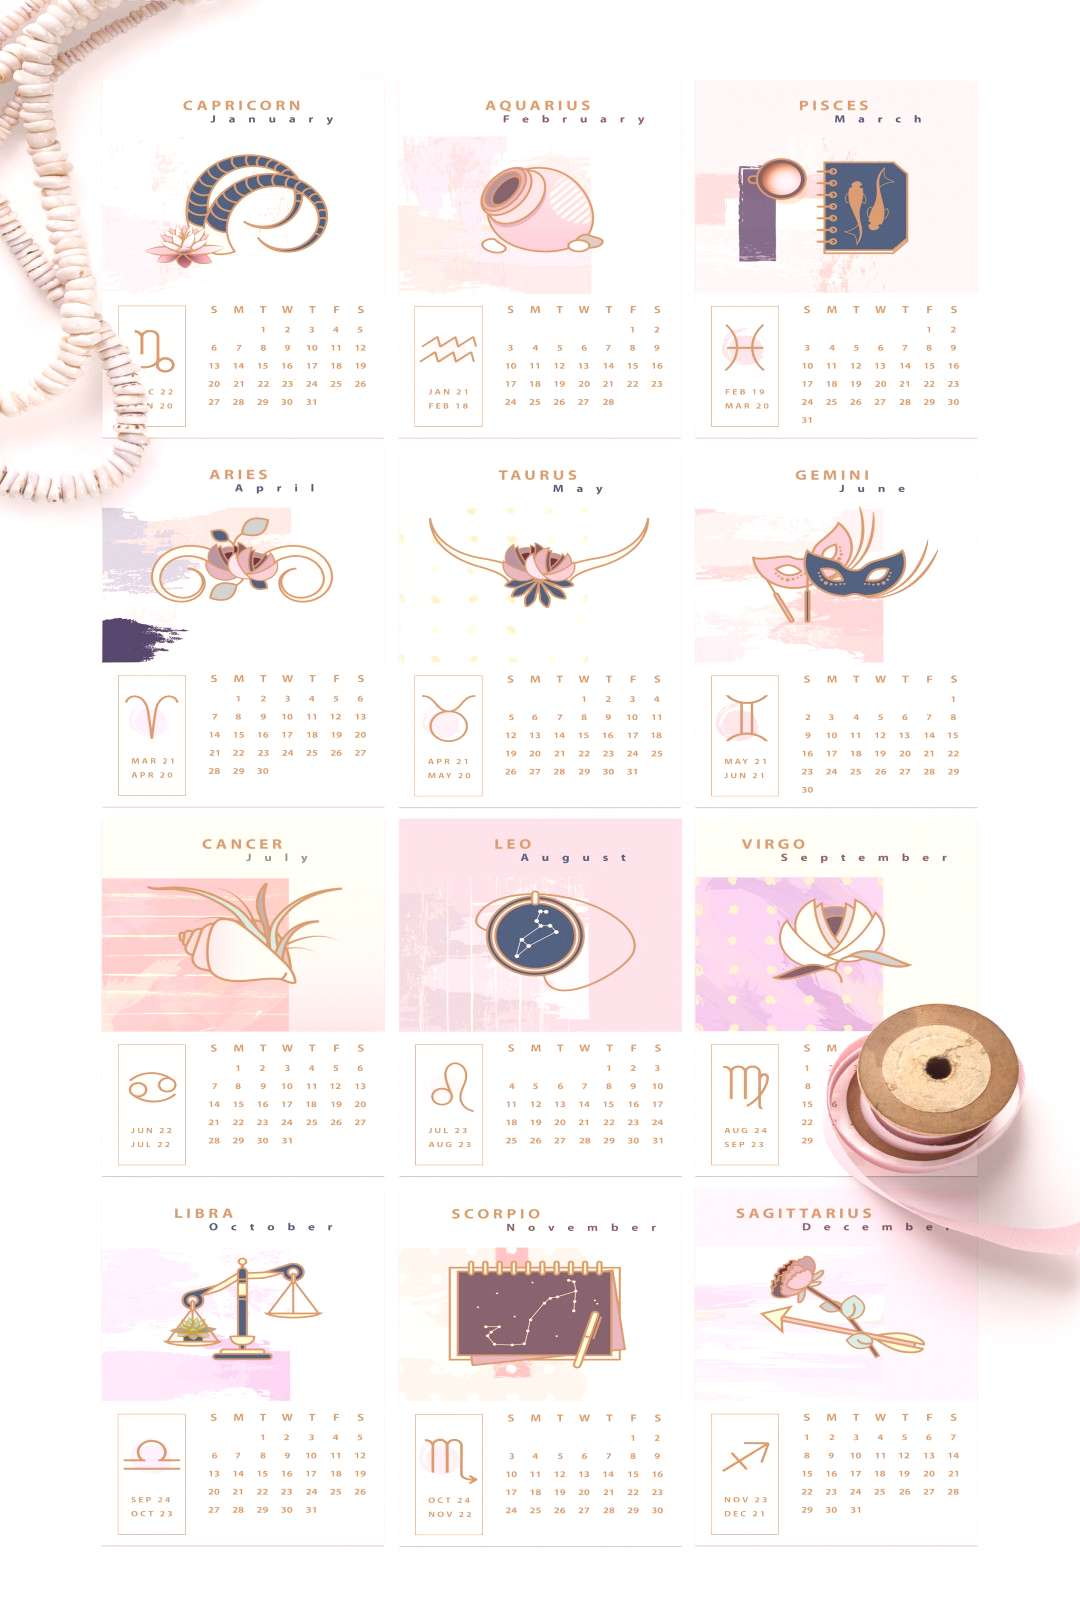 Astrology Calendar Templates pack includes two beautifully designed desk calendars in Constellation